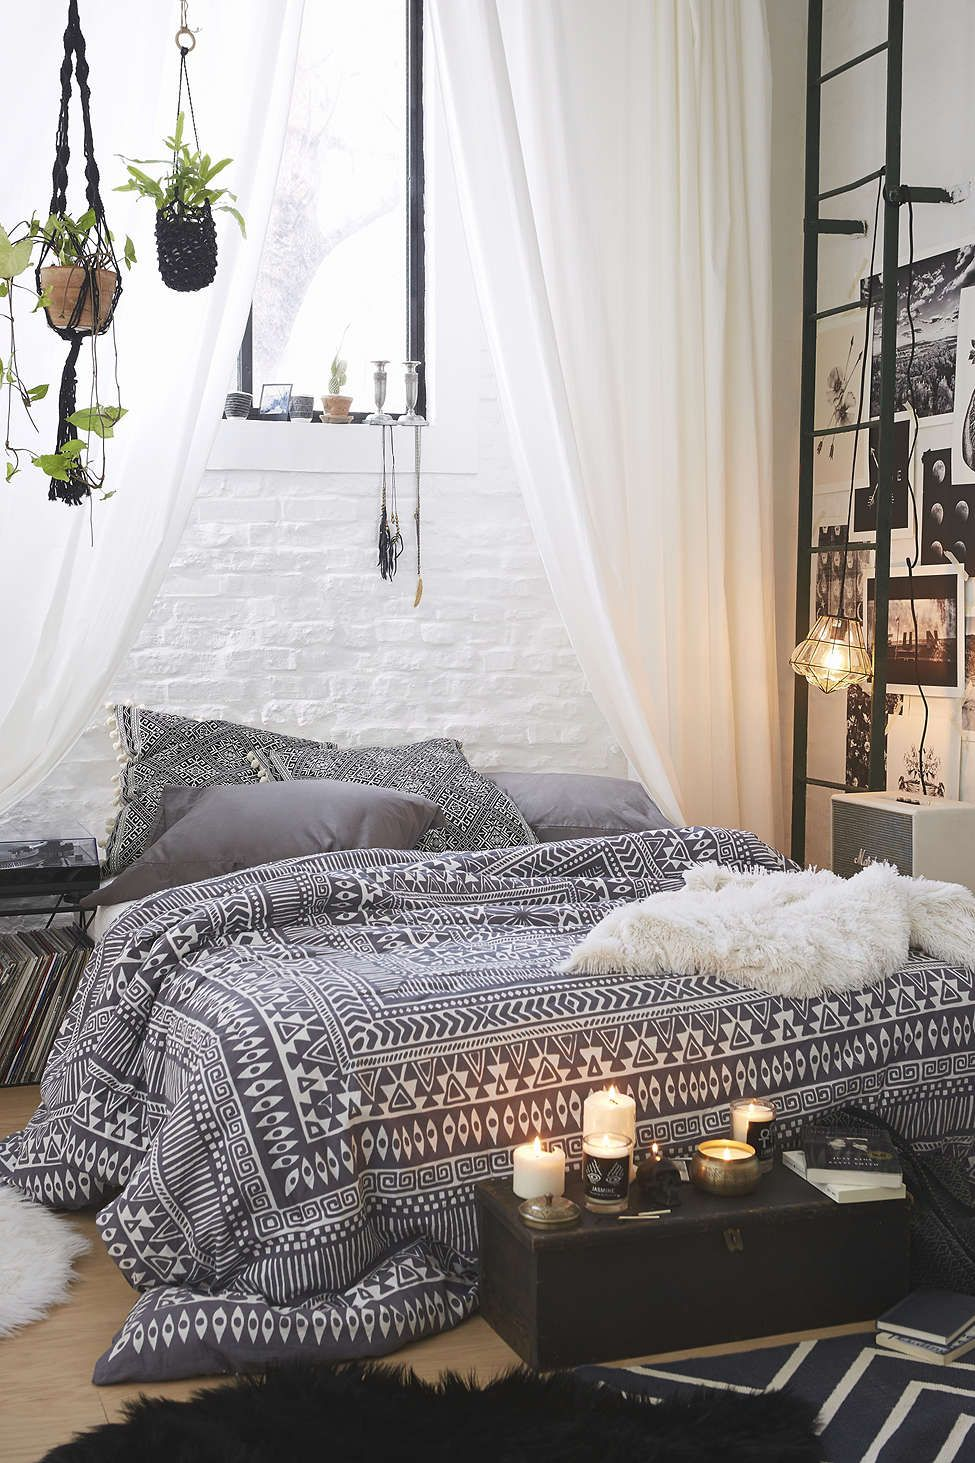 Urban outfitters bedroom - Bedrooms